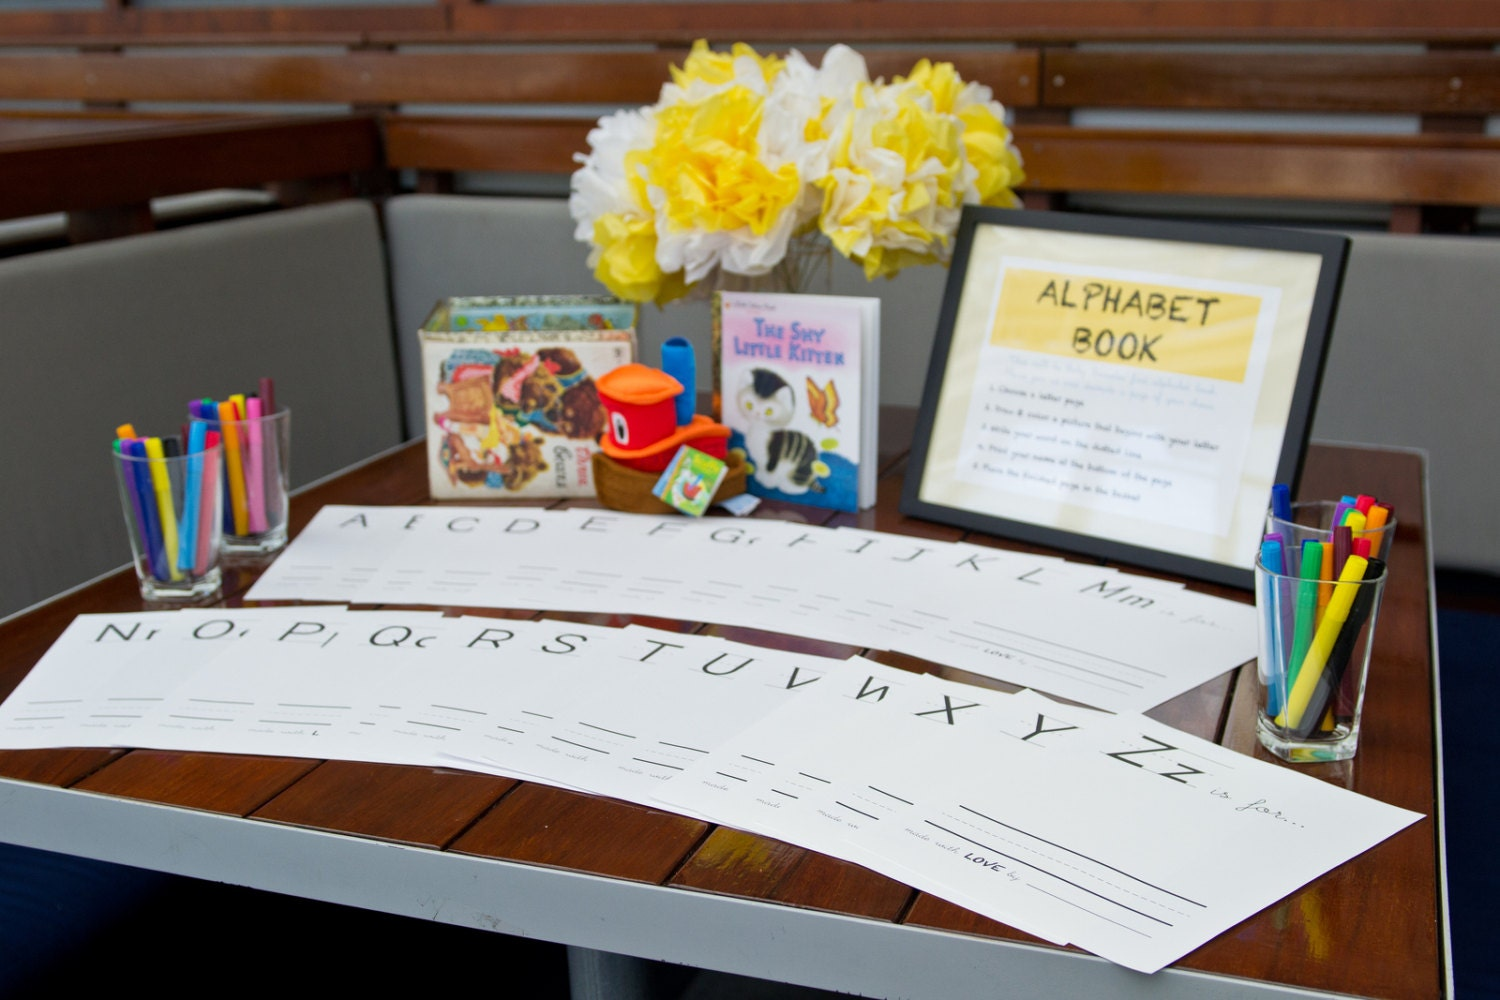 baby alphabet book a baby shower game / gift DIY instant